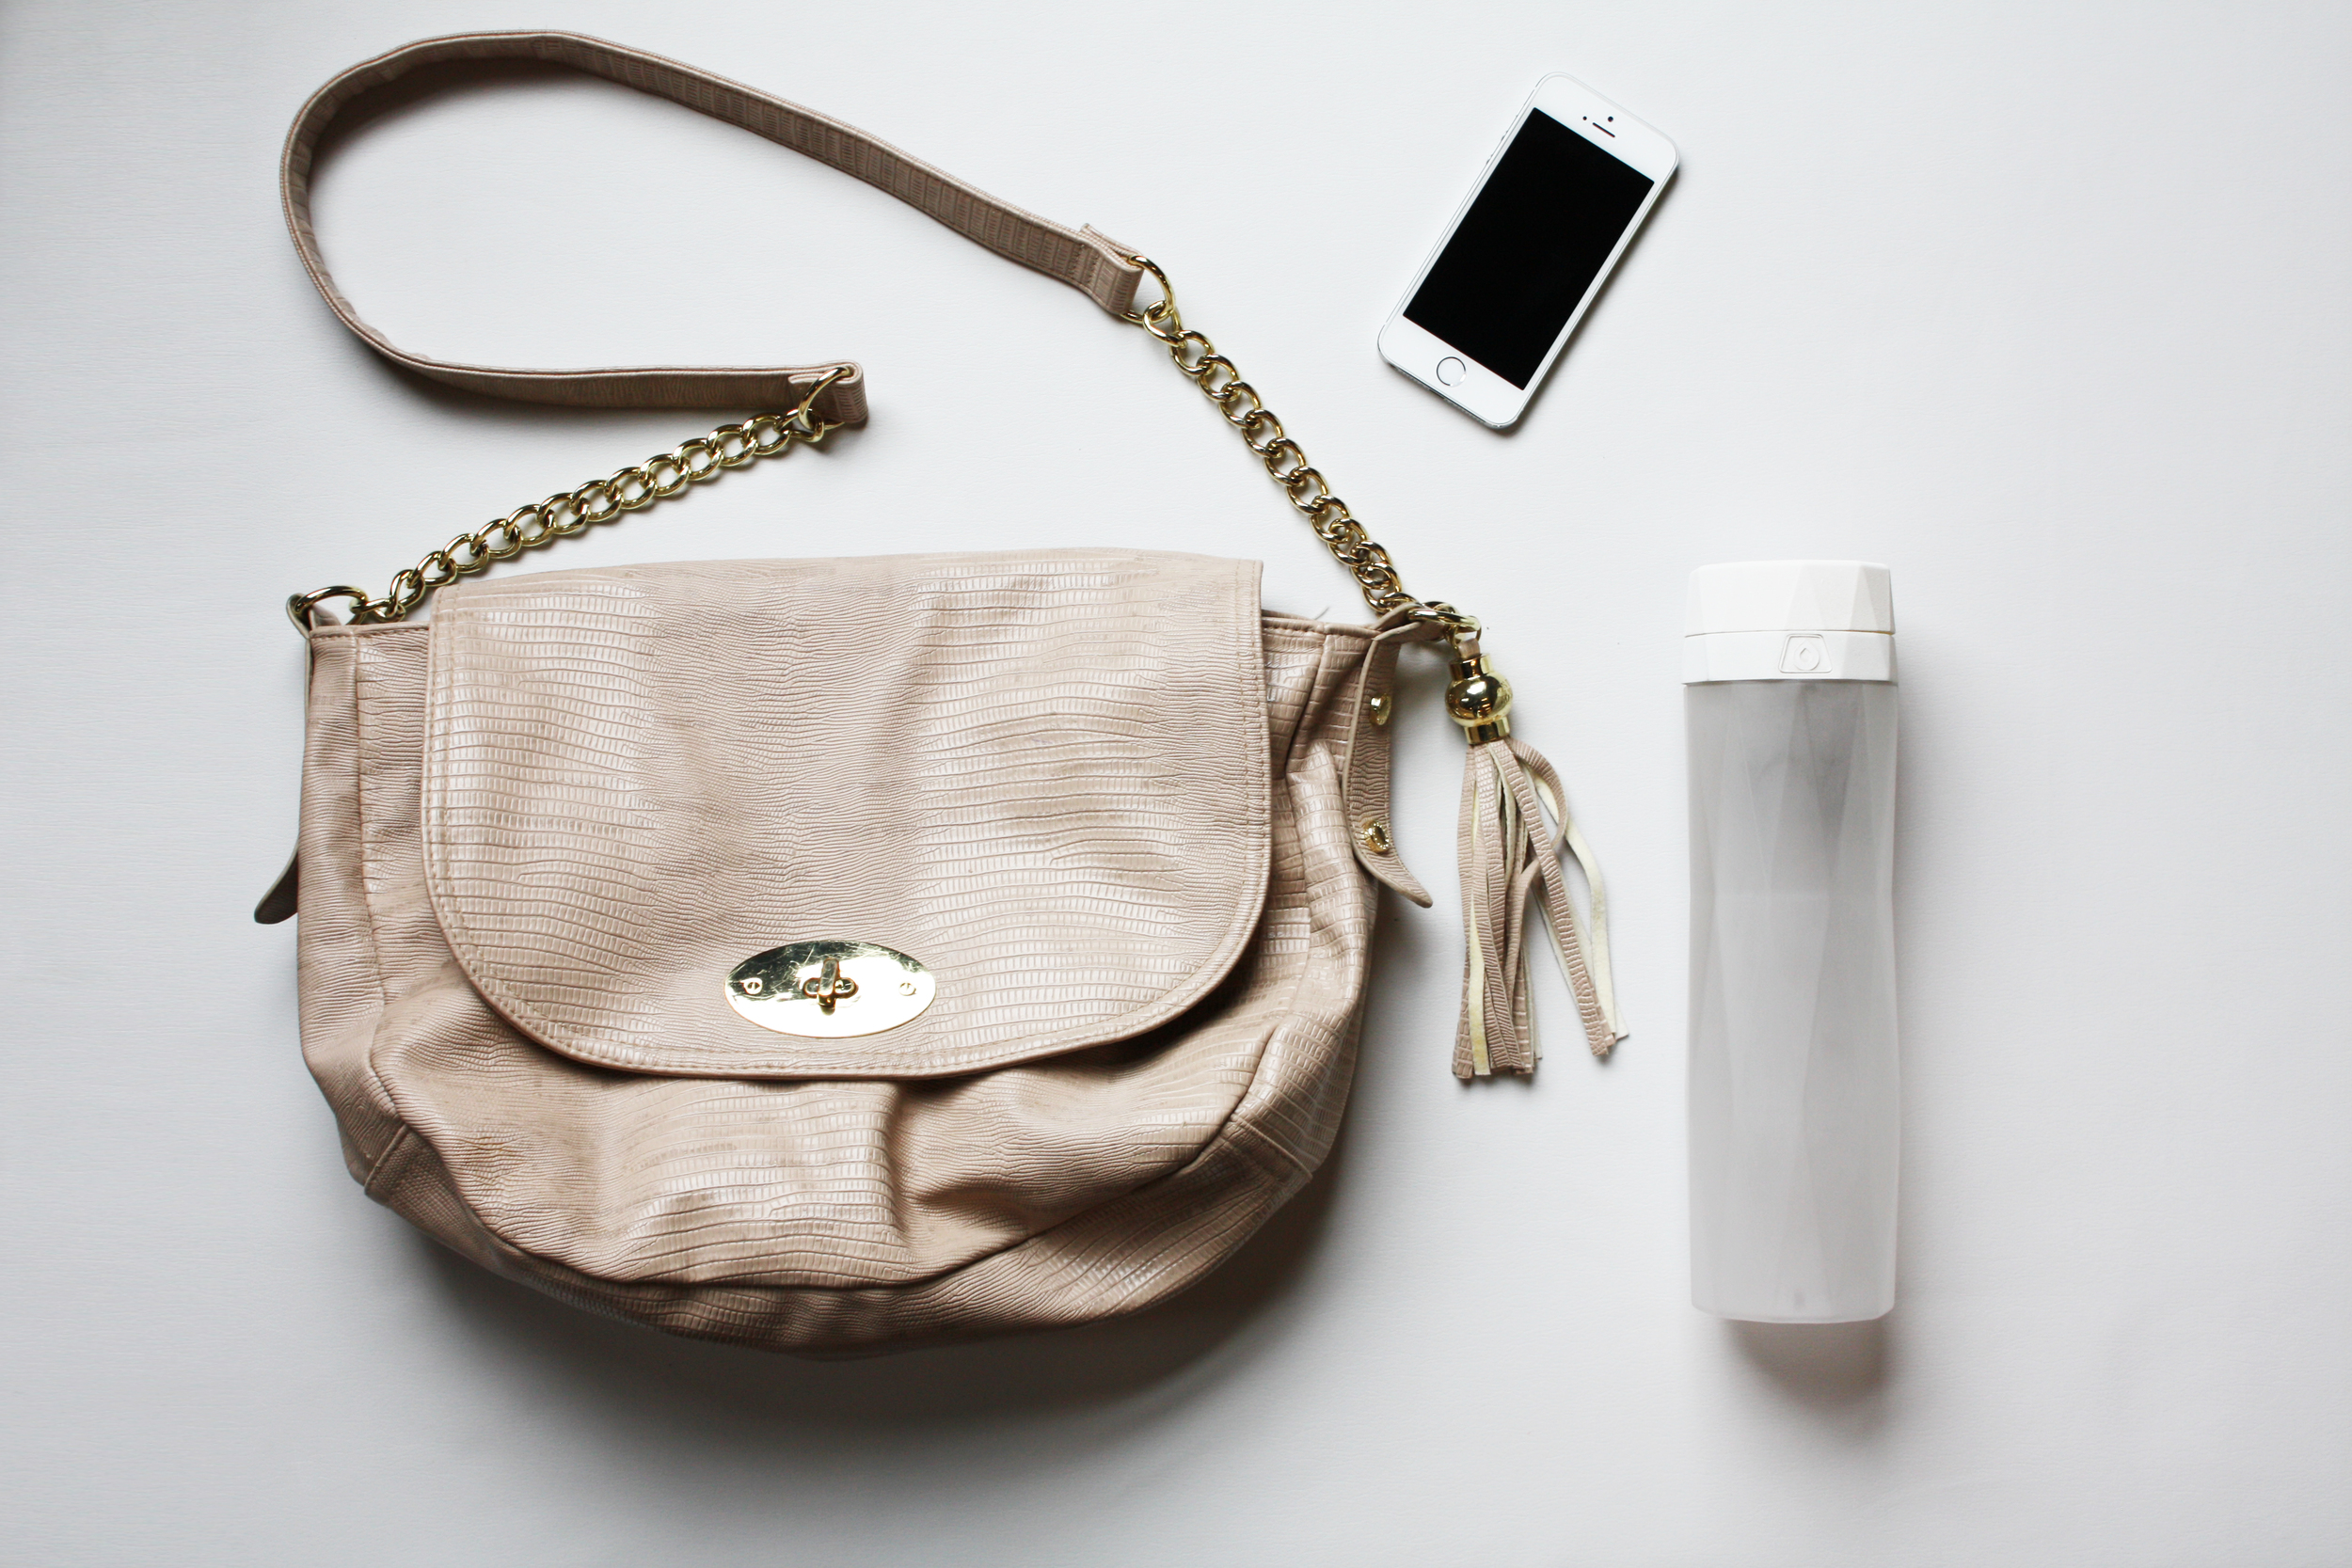 Purse+phone+bottle